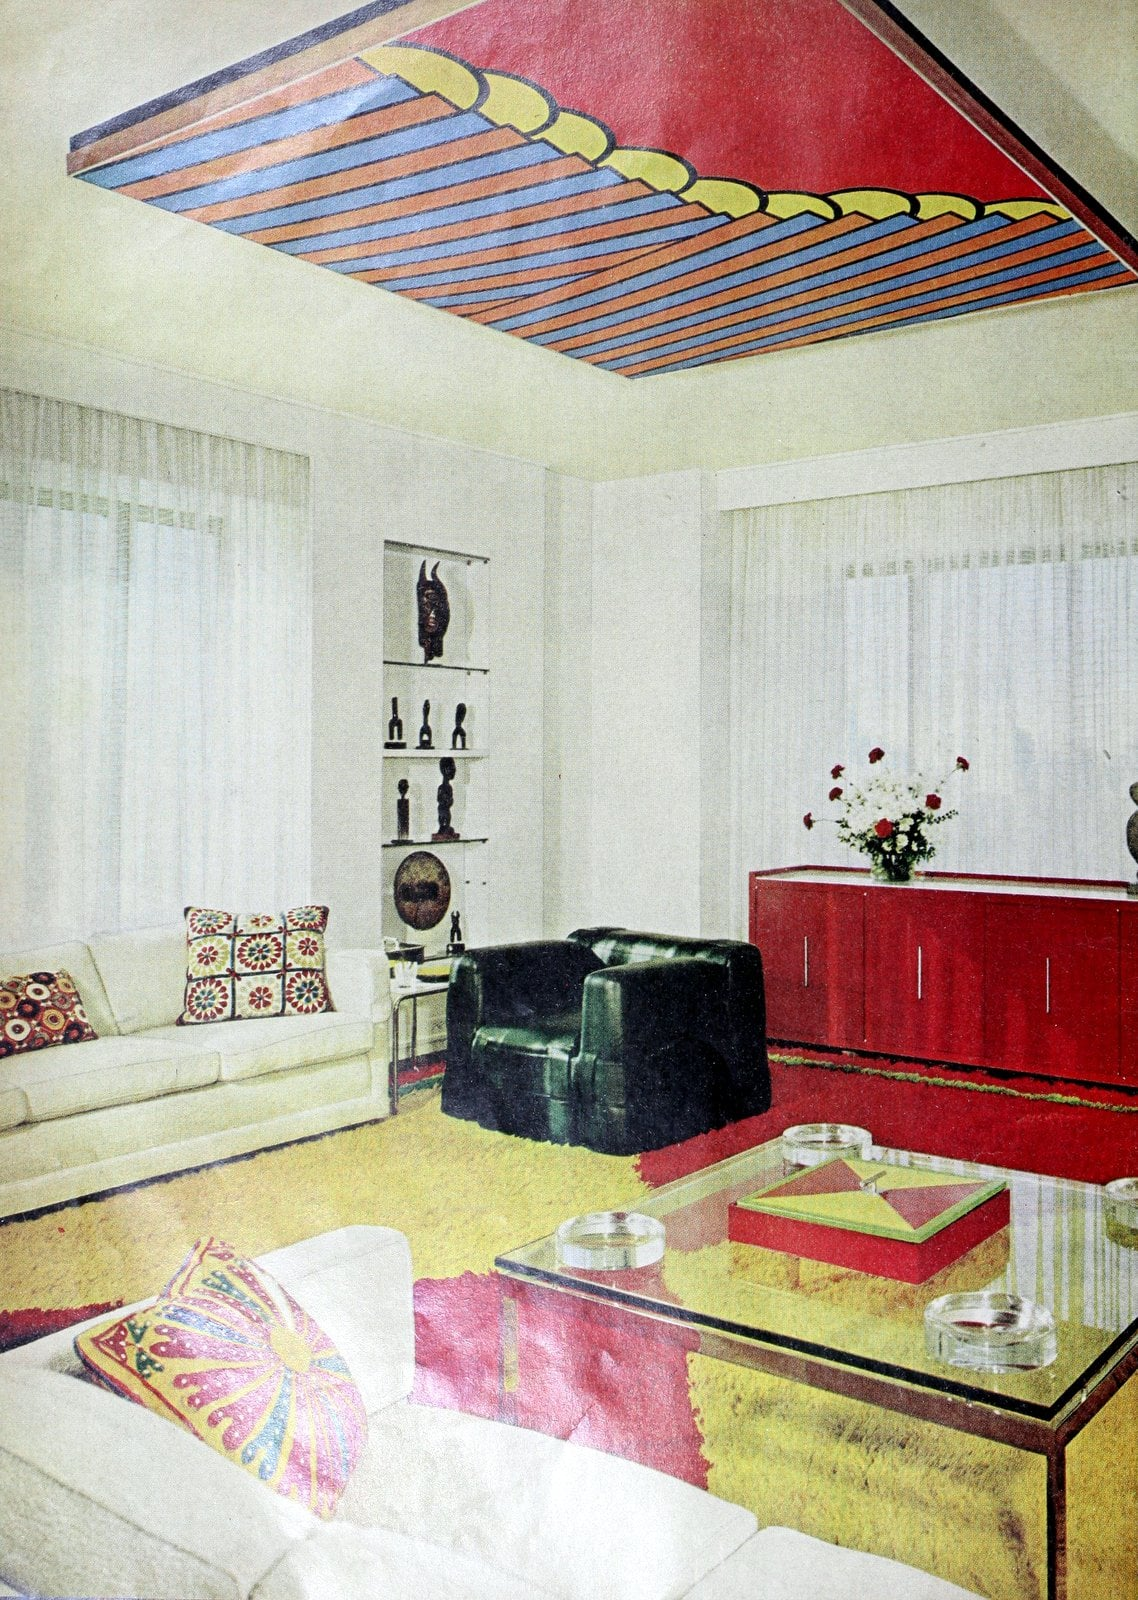 Unique ceiling art in this bright living room (1969)